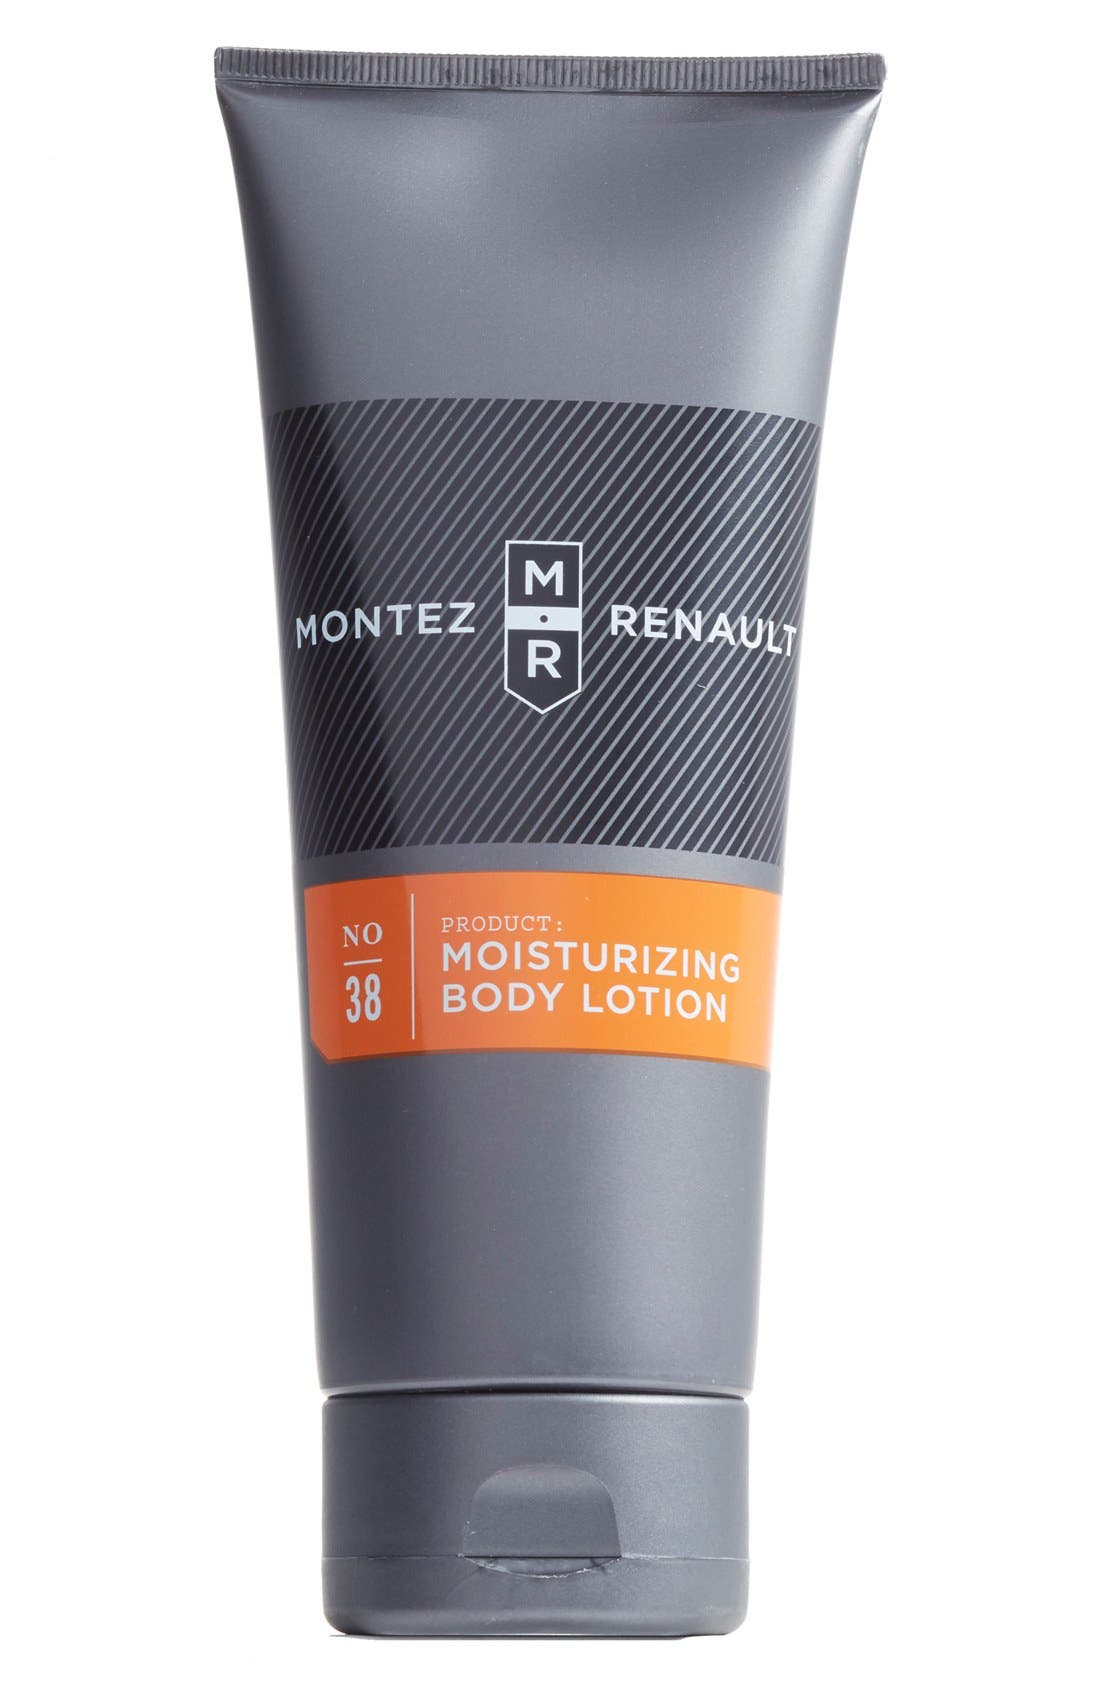 Montez Renault 'No. 38' Moisturizing Body Lotion